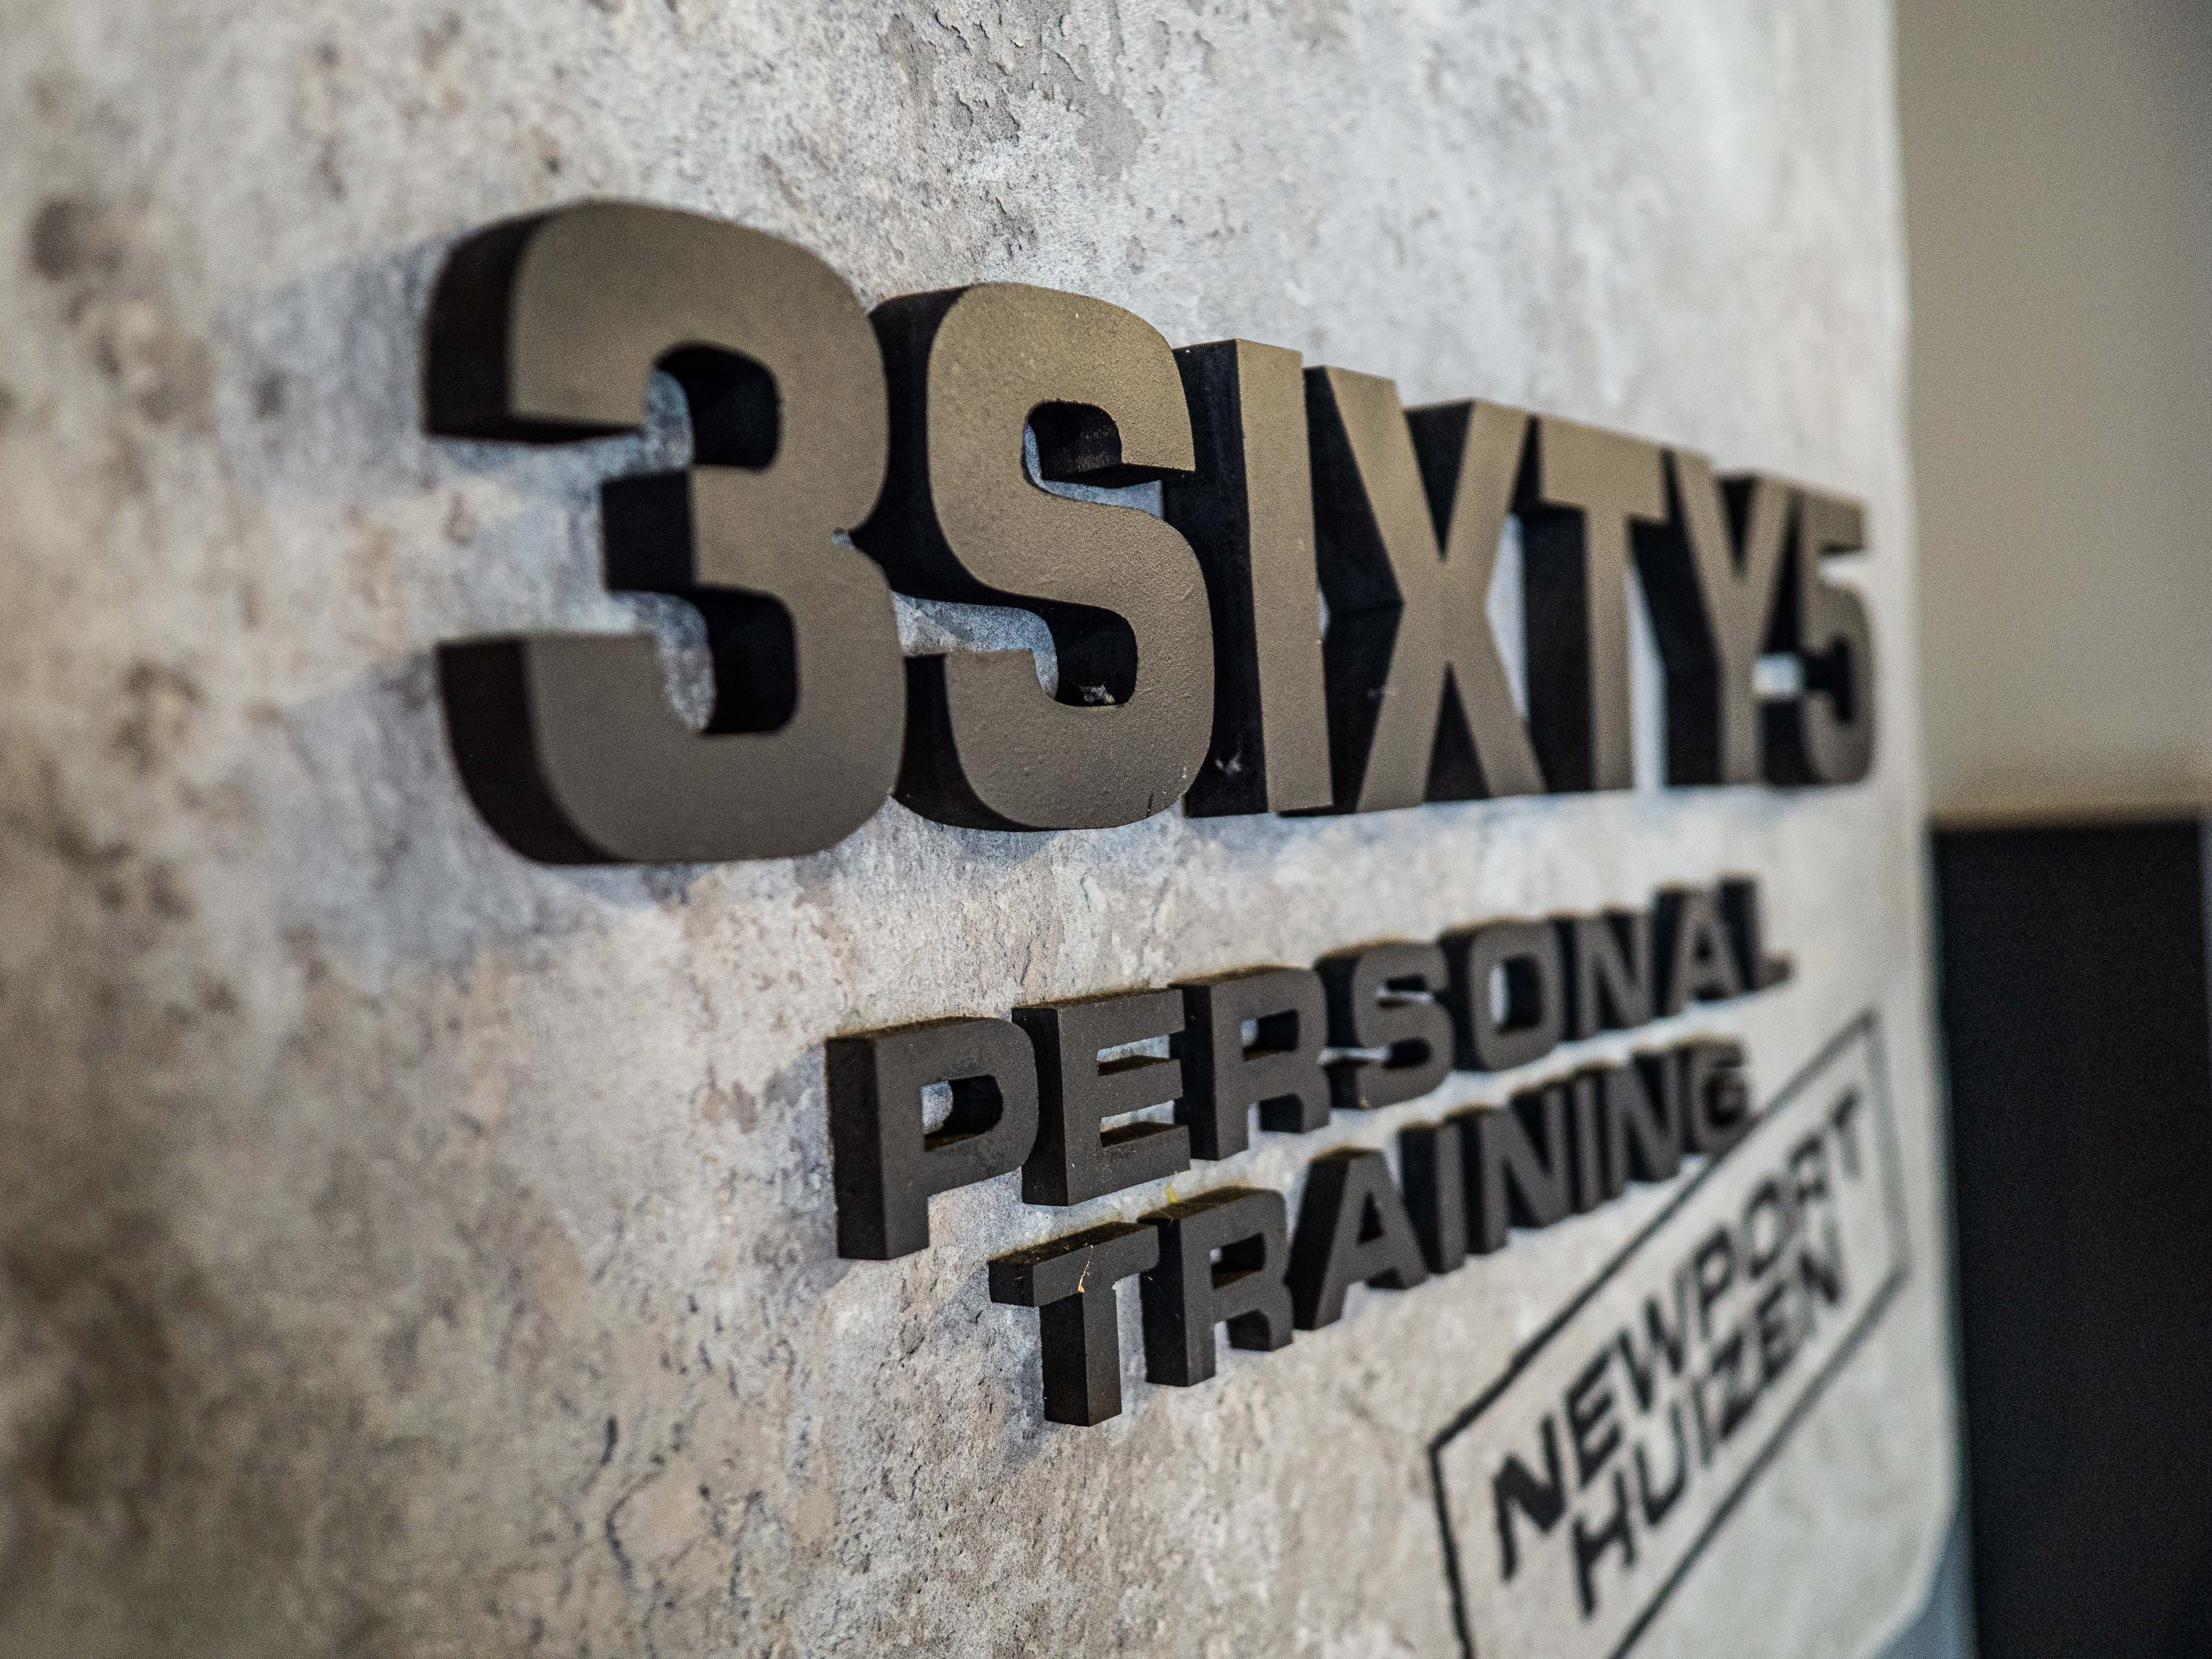 3sixty5-personaltraining-newport